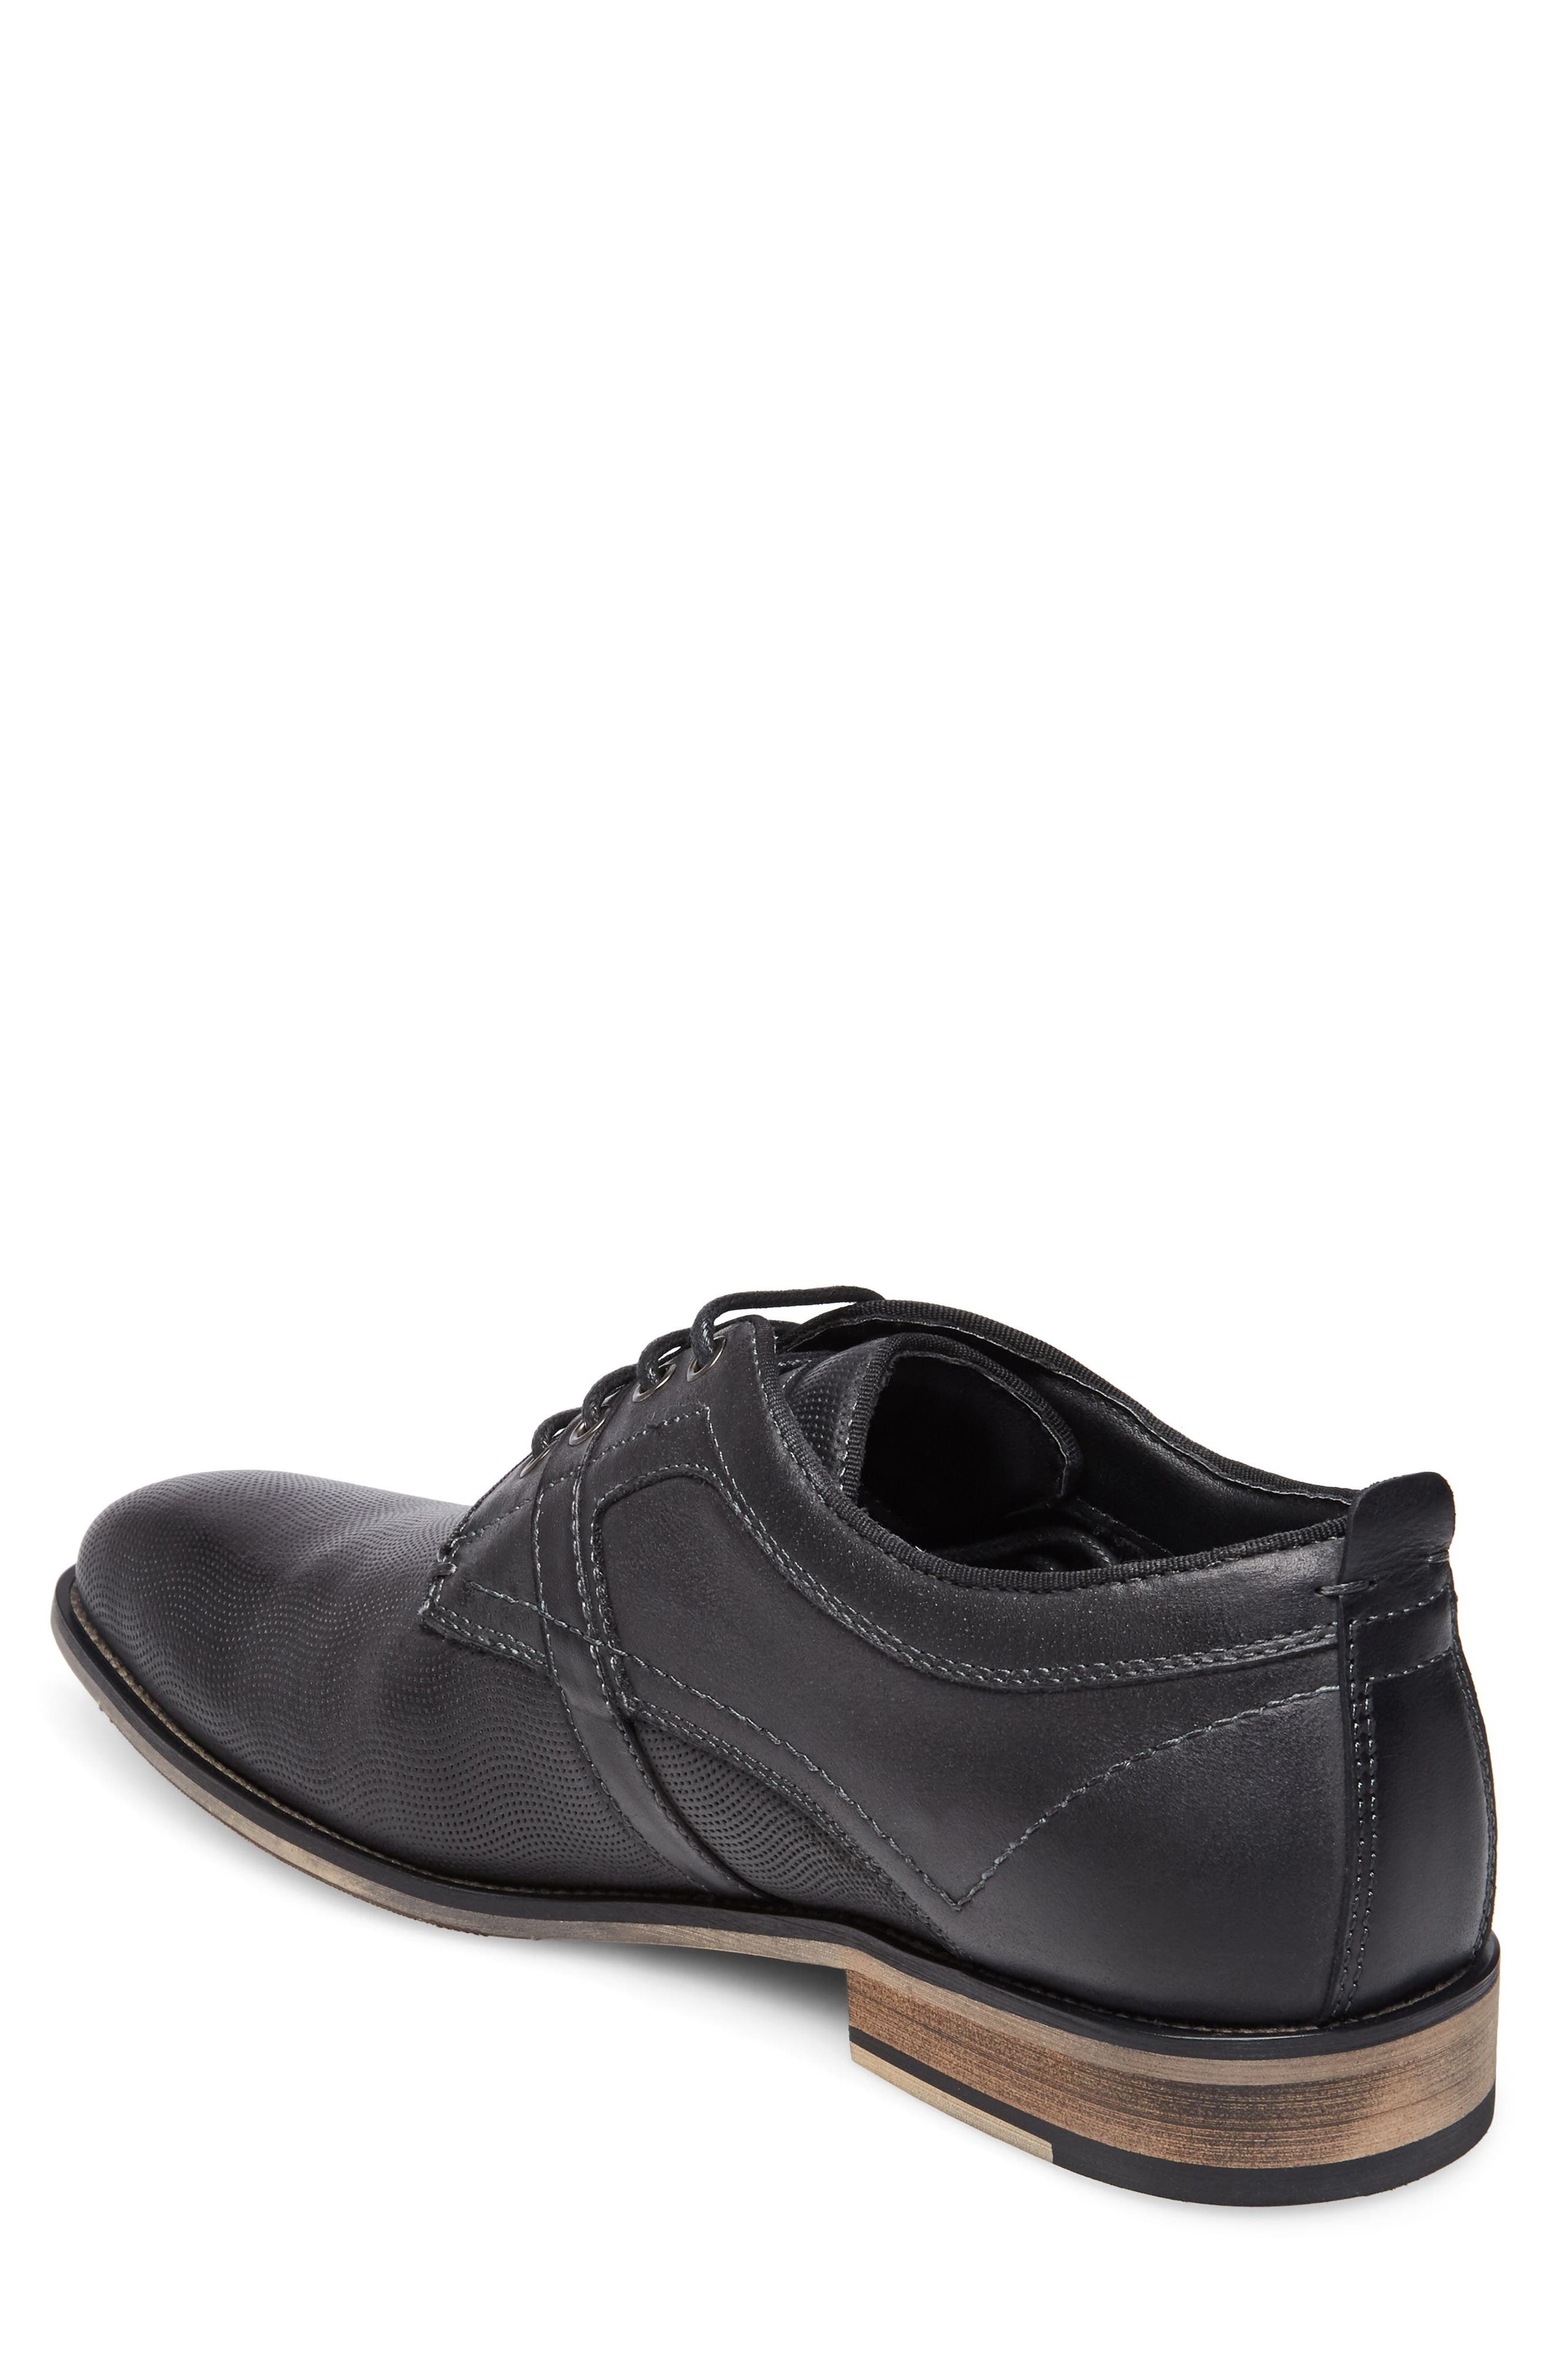 Jasco Plain Toe Derby,                             Alternate thumbnail 2, color,                             DARK GREY